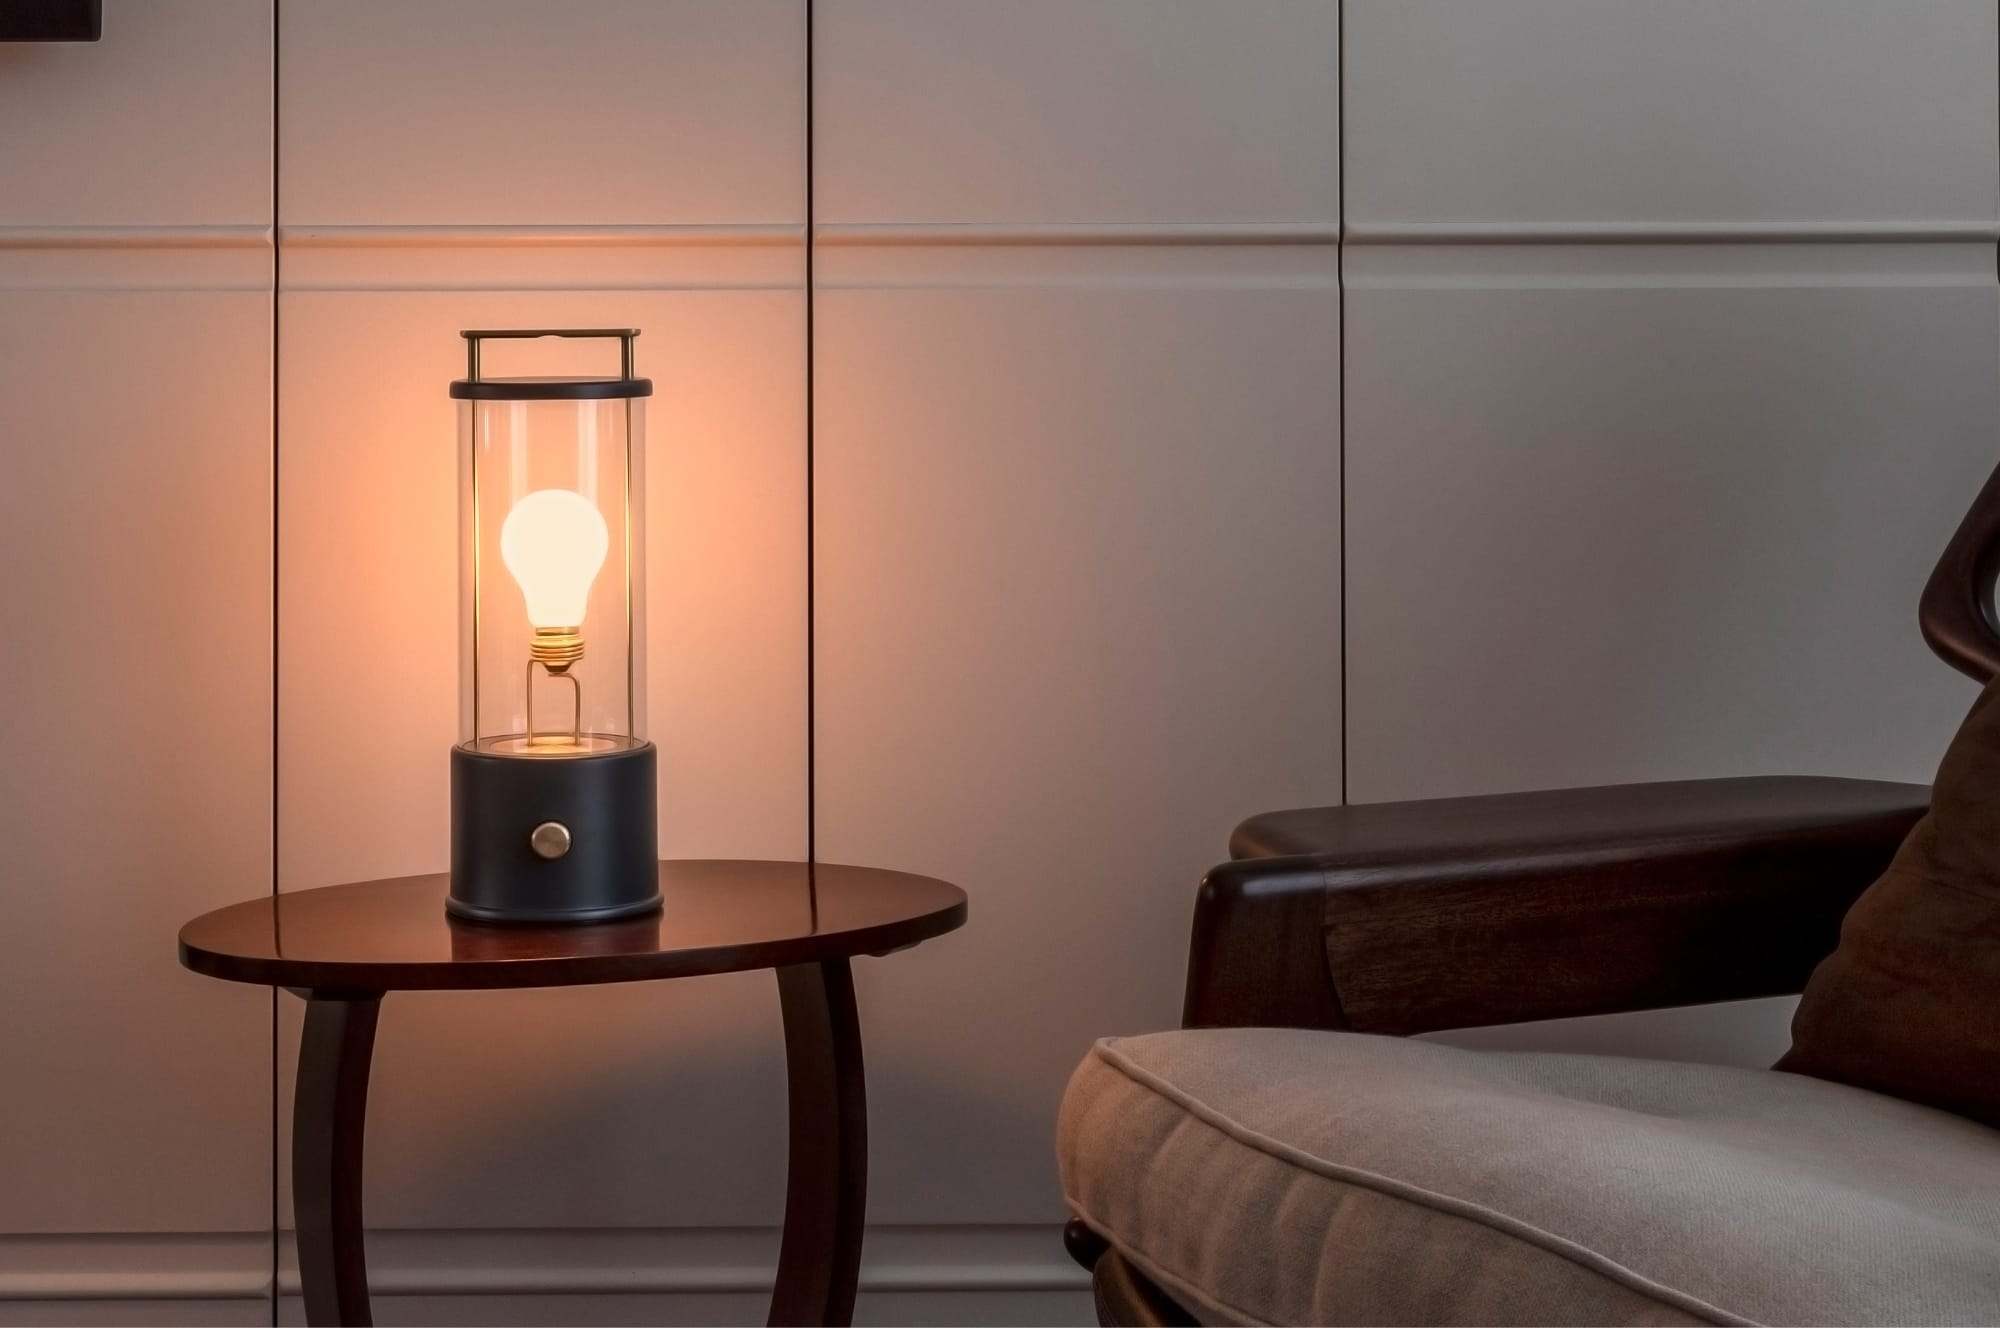 Muse - a timeless, portable light with style